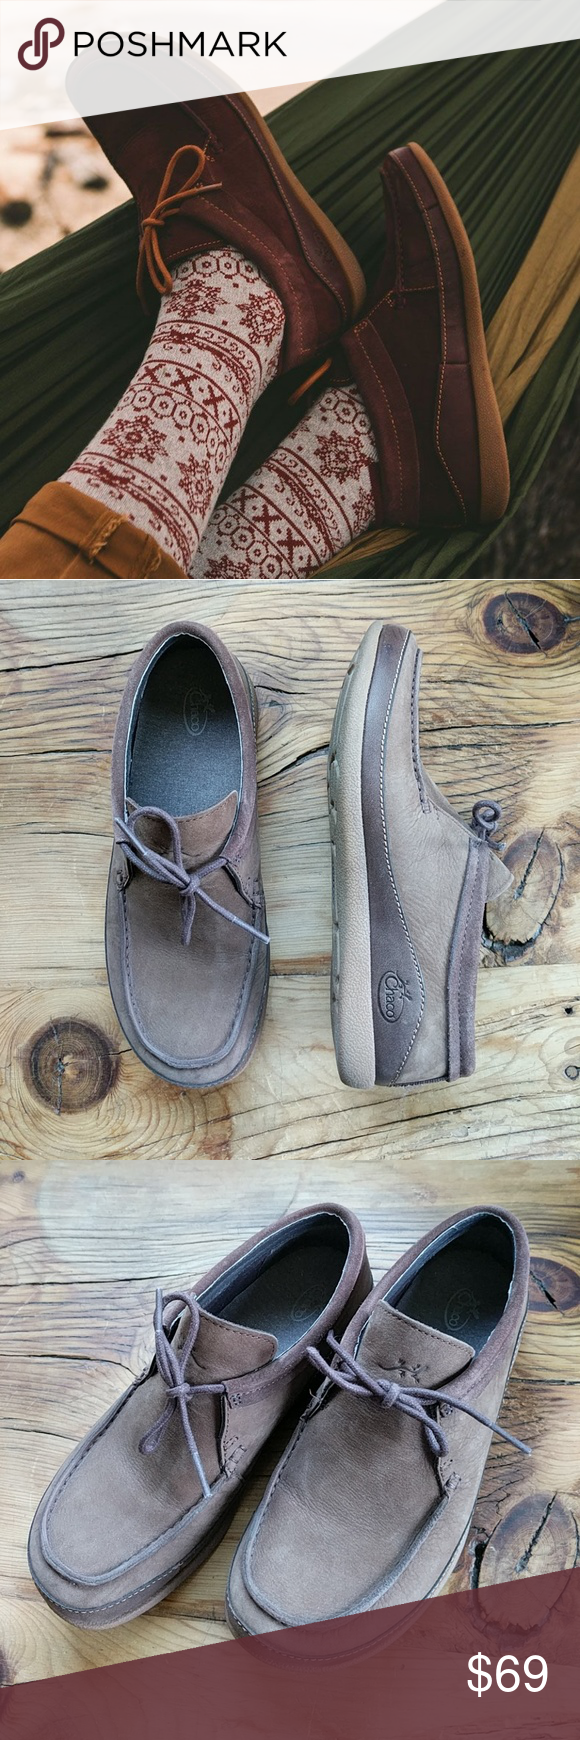 64353463f3e3 NWOT Chaco Pineland Moc Pinecone Brown 7.5 Ready for your moccasin  mainstay  Reach for the